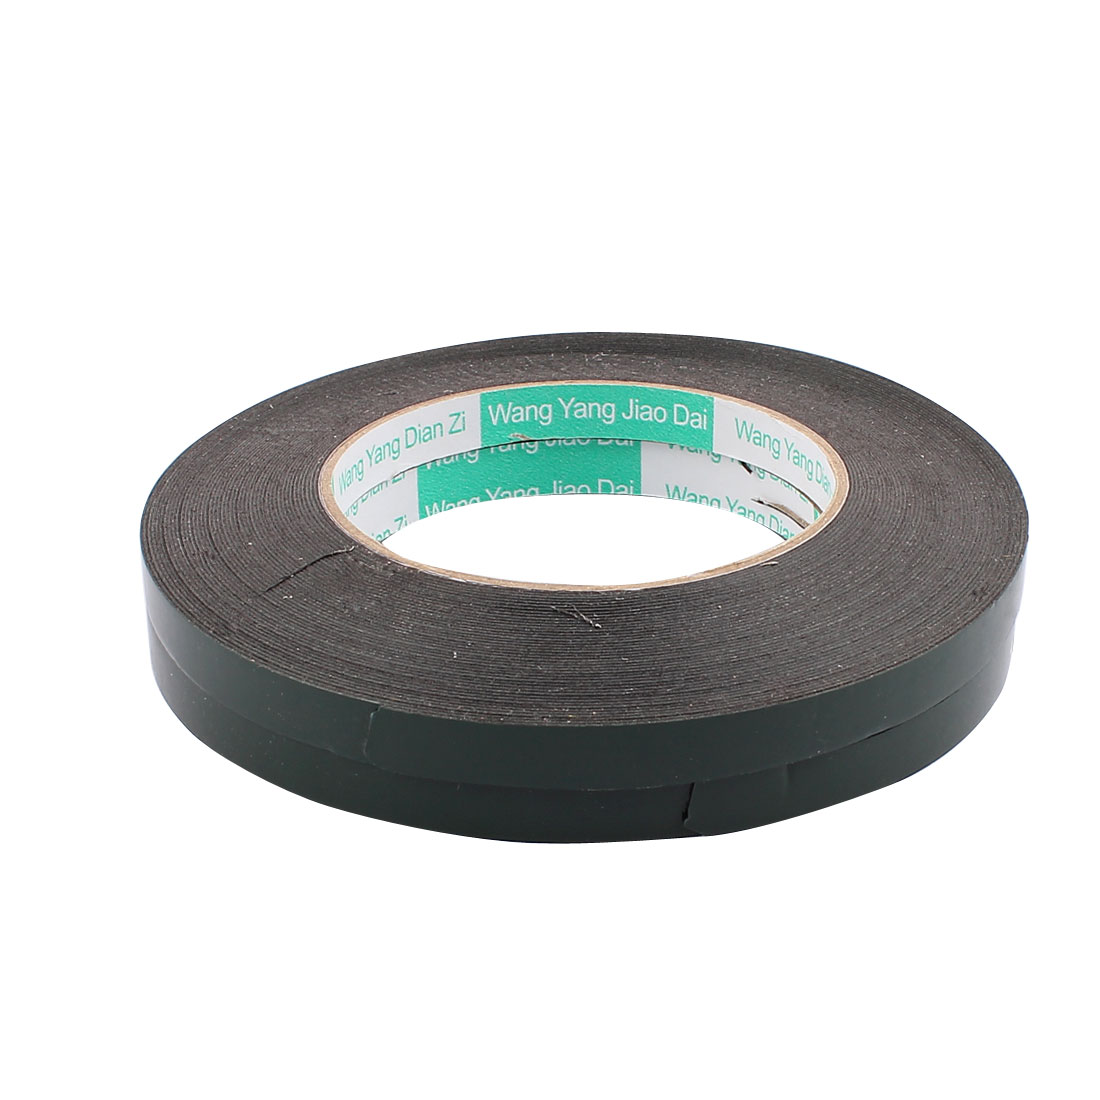 2 Pcs 1CM Width 15M Length 0.5MM Thick Dual Sided Sealing Shockproof Sponge Tape